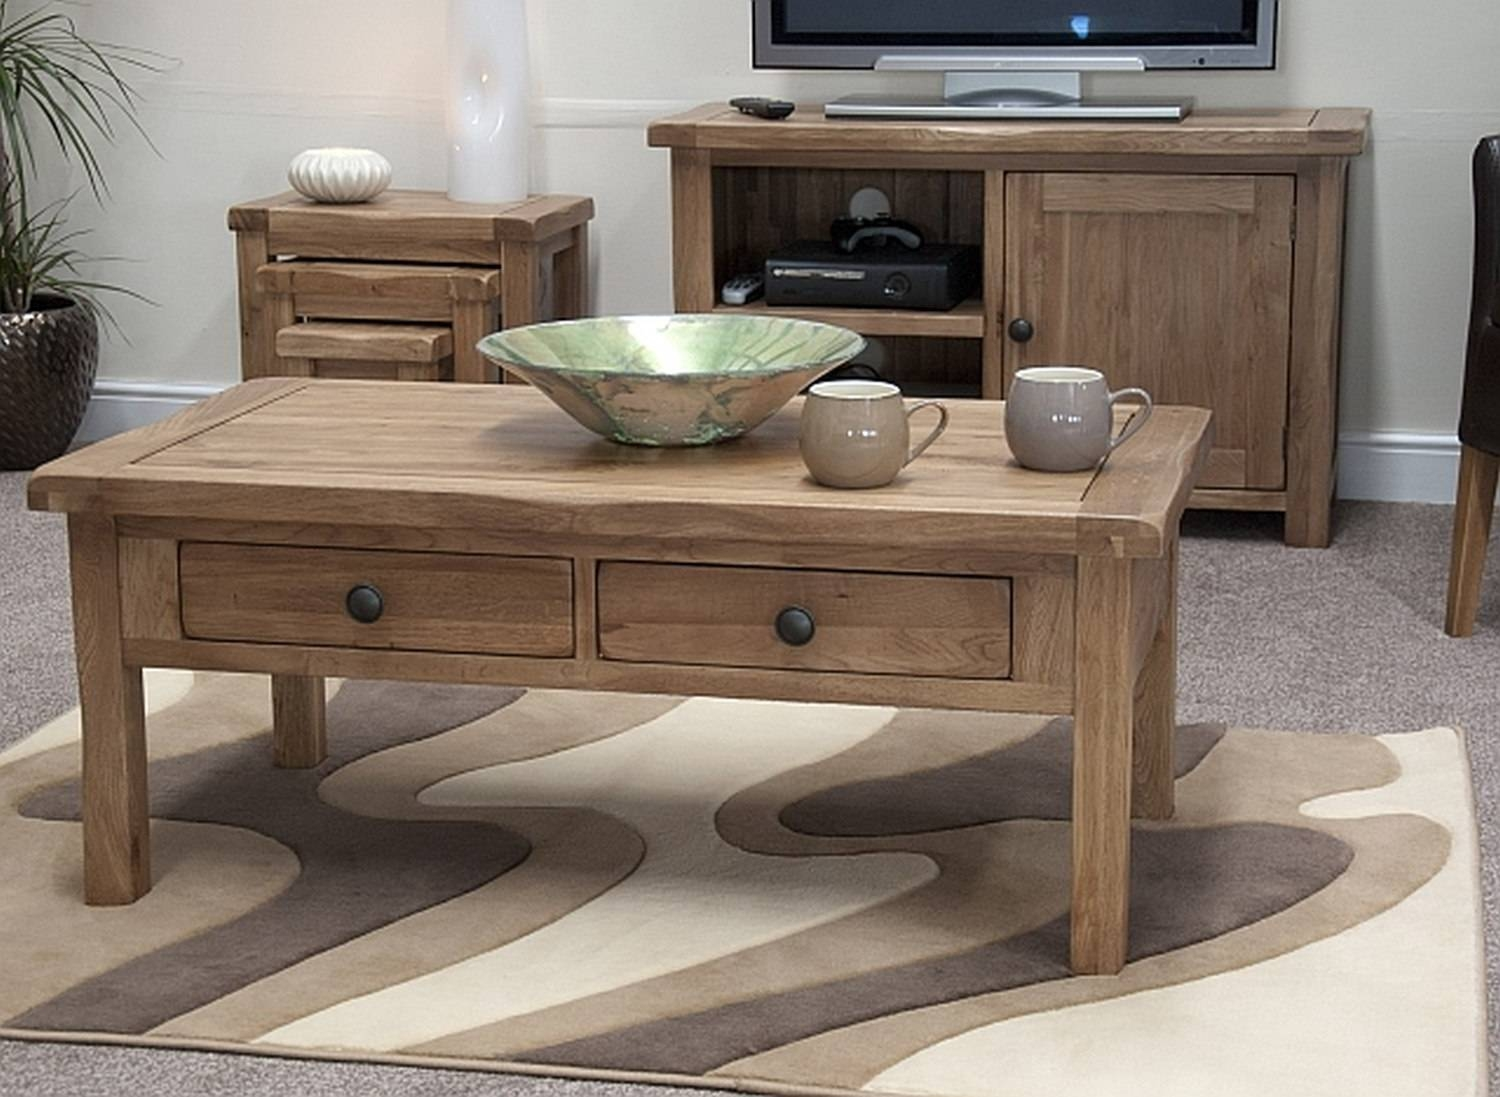 Tv Stand Coffee Table End Table Set | Coffee Tables Decoration with Rustic Coffee Tables and Tv Stands (Image 22 of 30)